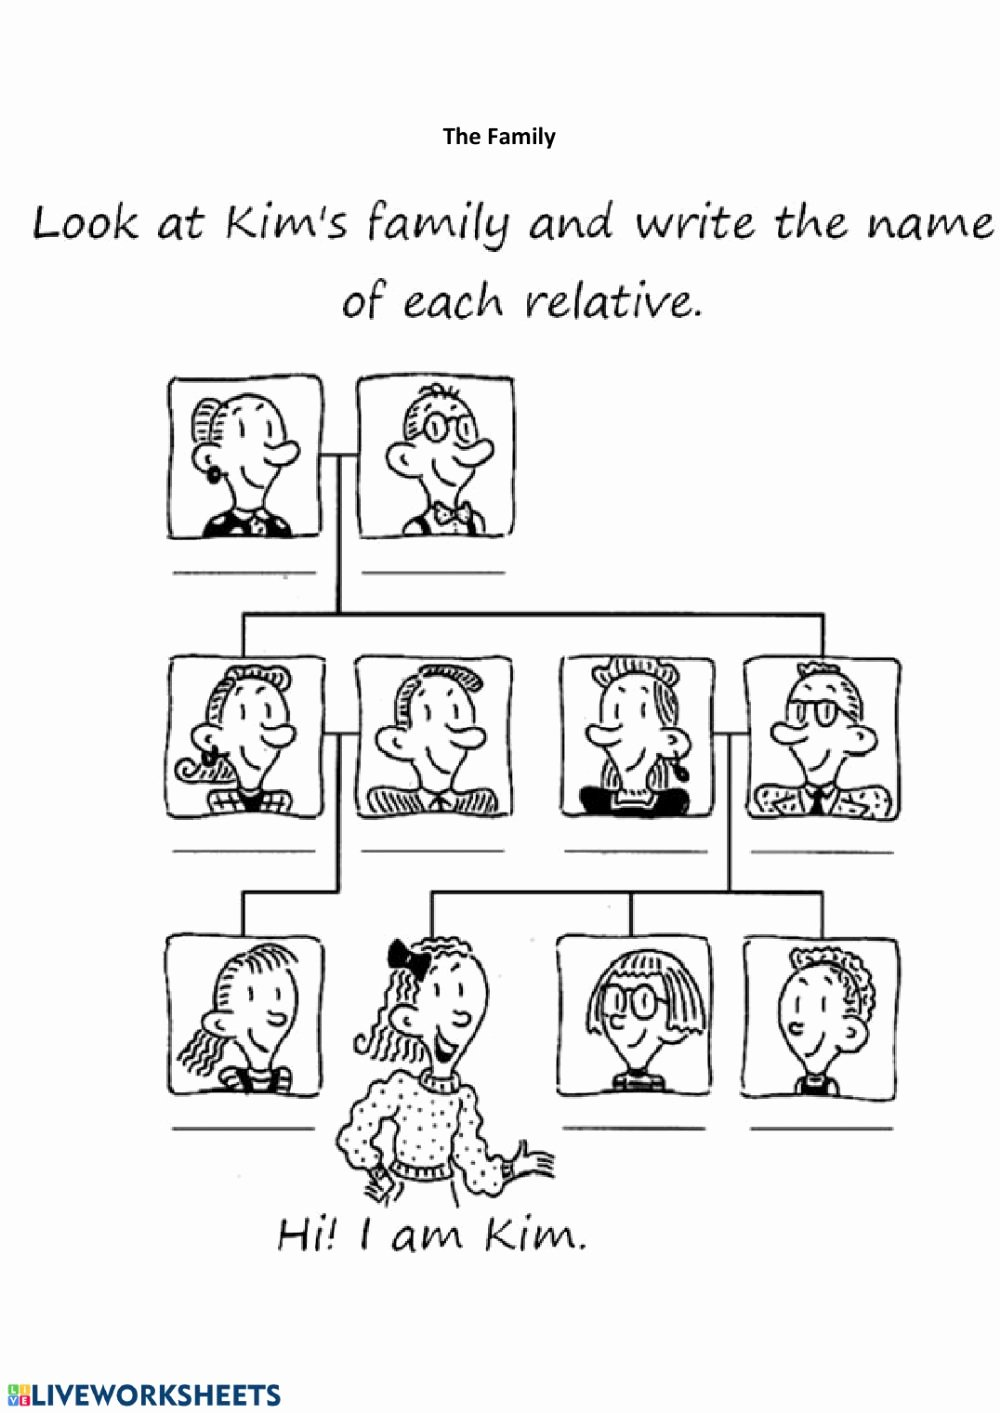 Family Tree Worksheets for Kids top Kids 1 2 Family Members Interactive Worksheet